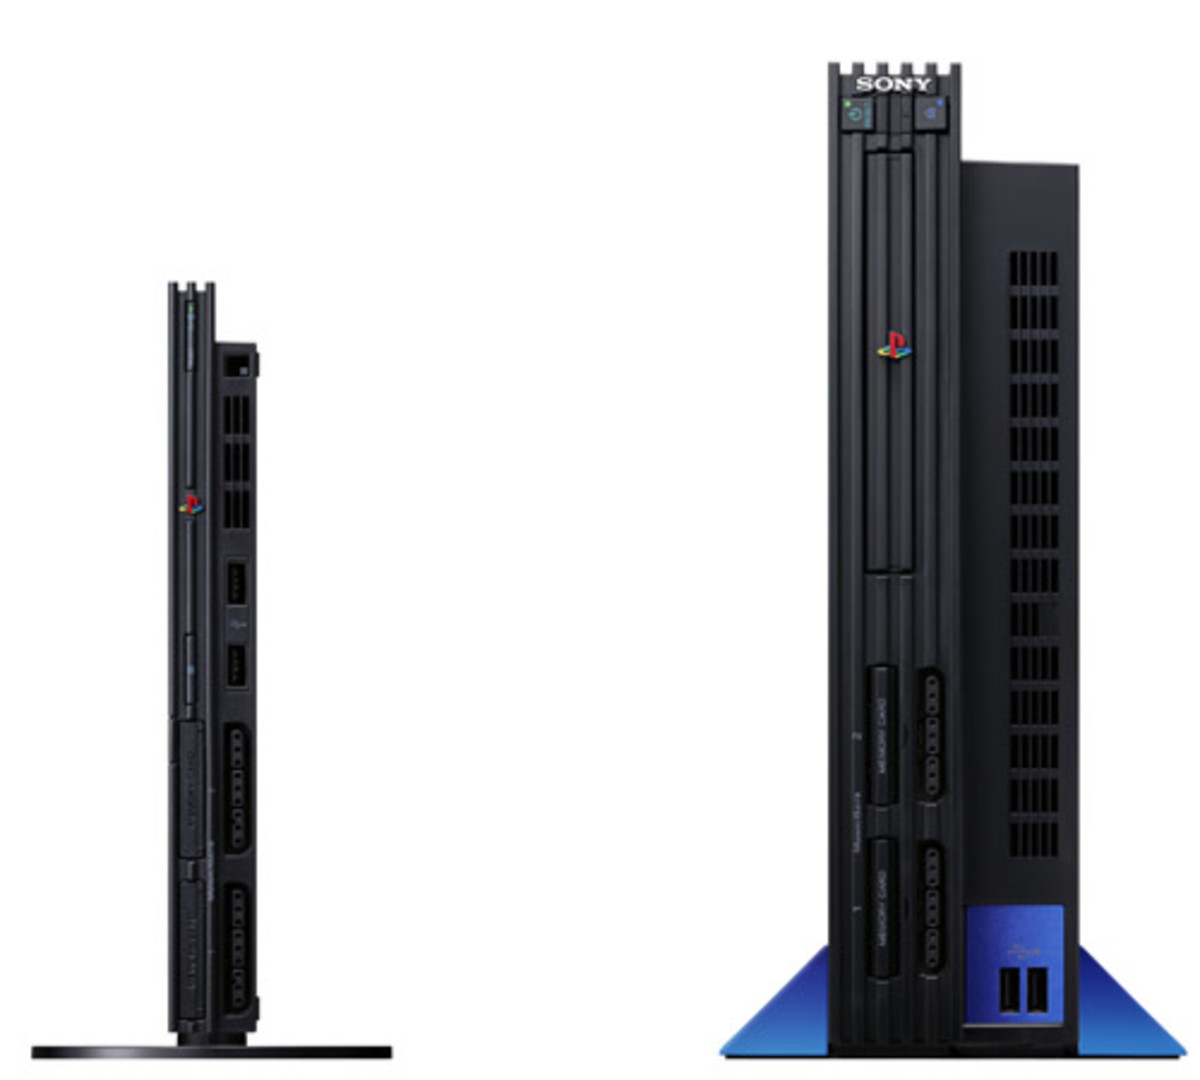 PlayStation 2 Original Vs. Slim: A GameStop Girl's Analysis